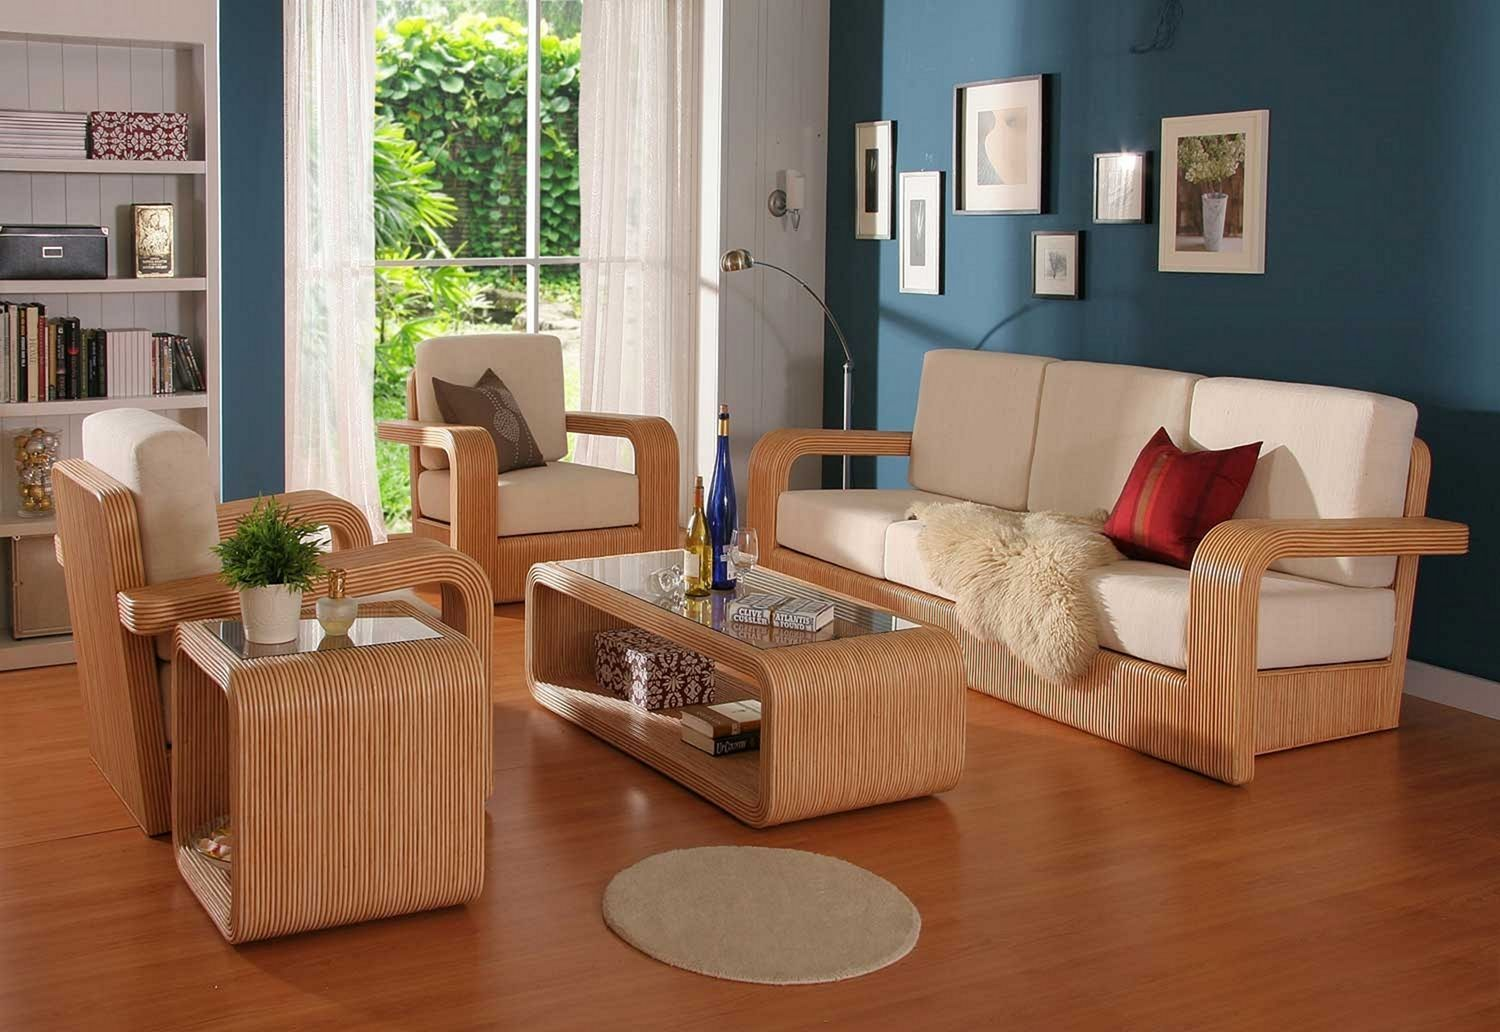 14 Awesome Living Room Wood Furniture Design Ideas In 2020 Wooden Sofa Designs Furniture Design Living Room Wooden Sofa Set Designs